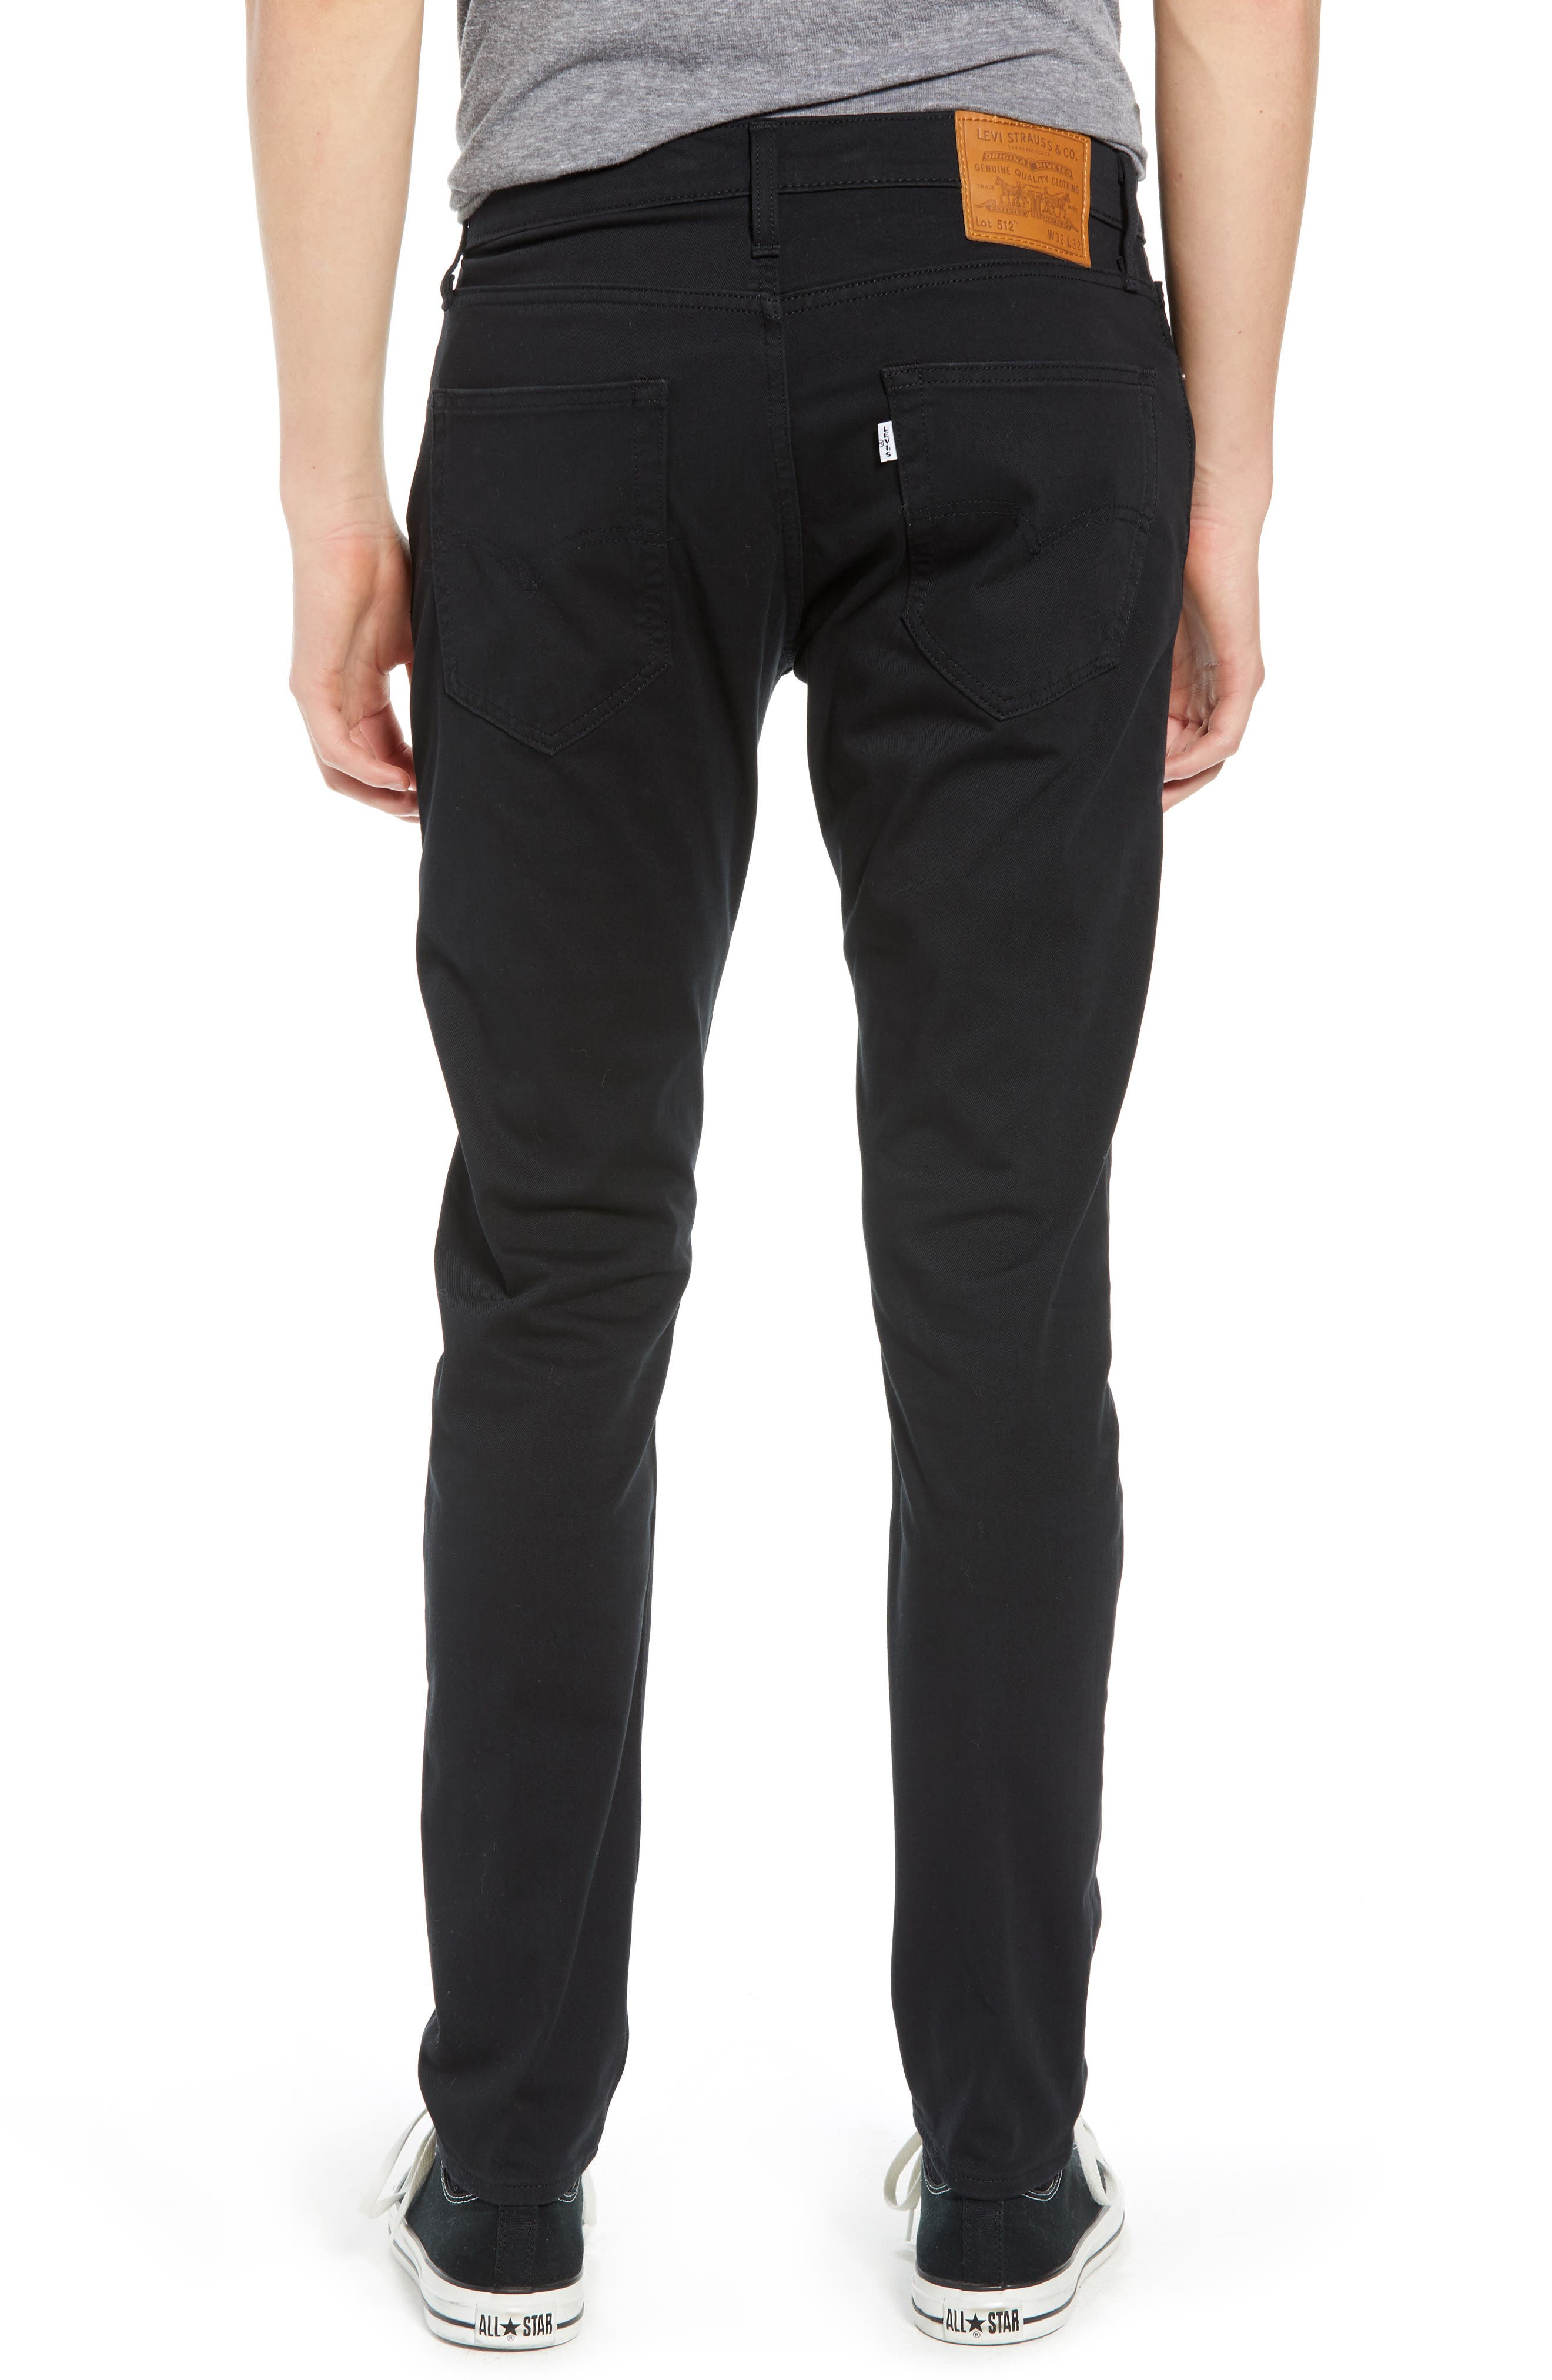 512<sup>™</sup> Slouchy Skinny Fit Twill Pants,                             Alternate thumbnail 2, color,                             BLACK WONDER KNIT TWILL